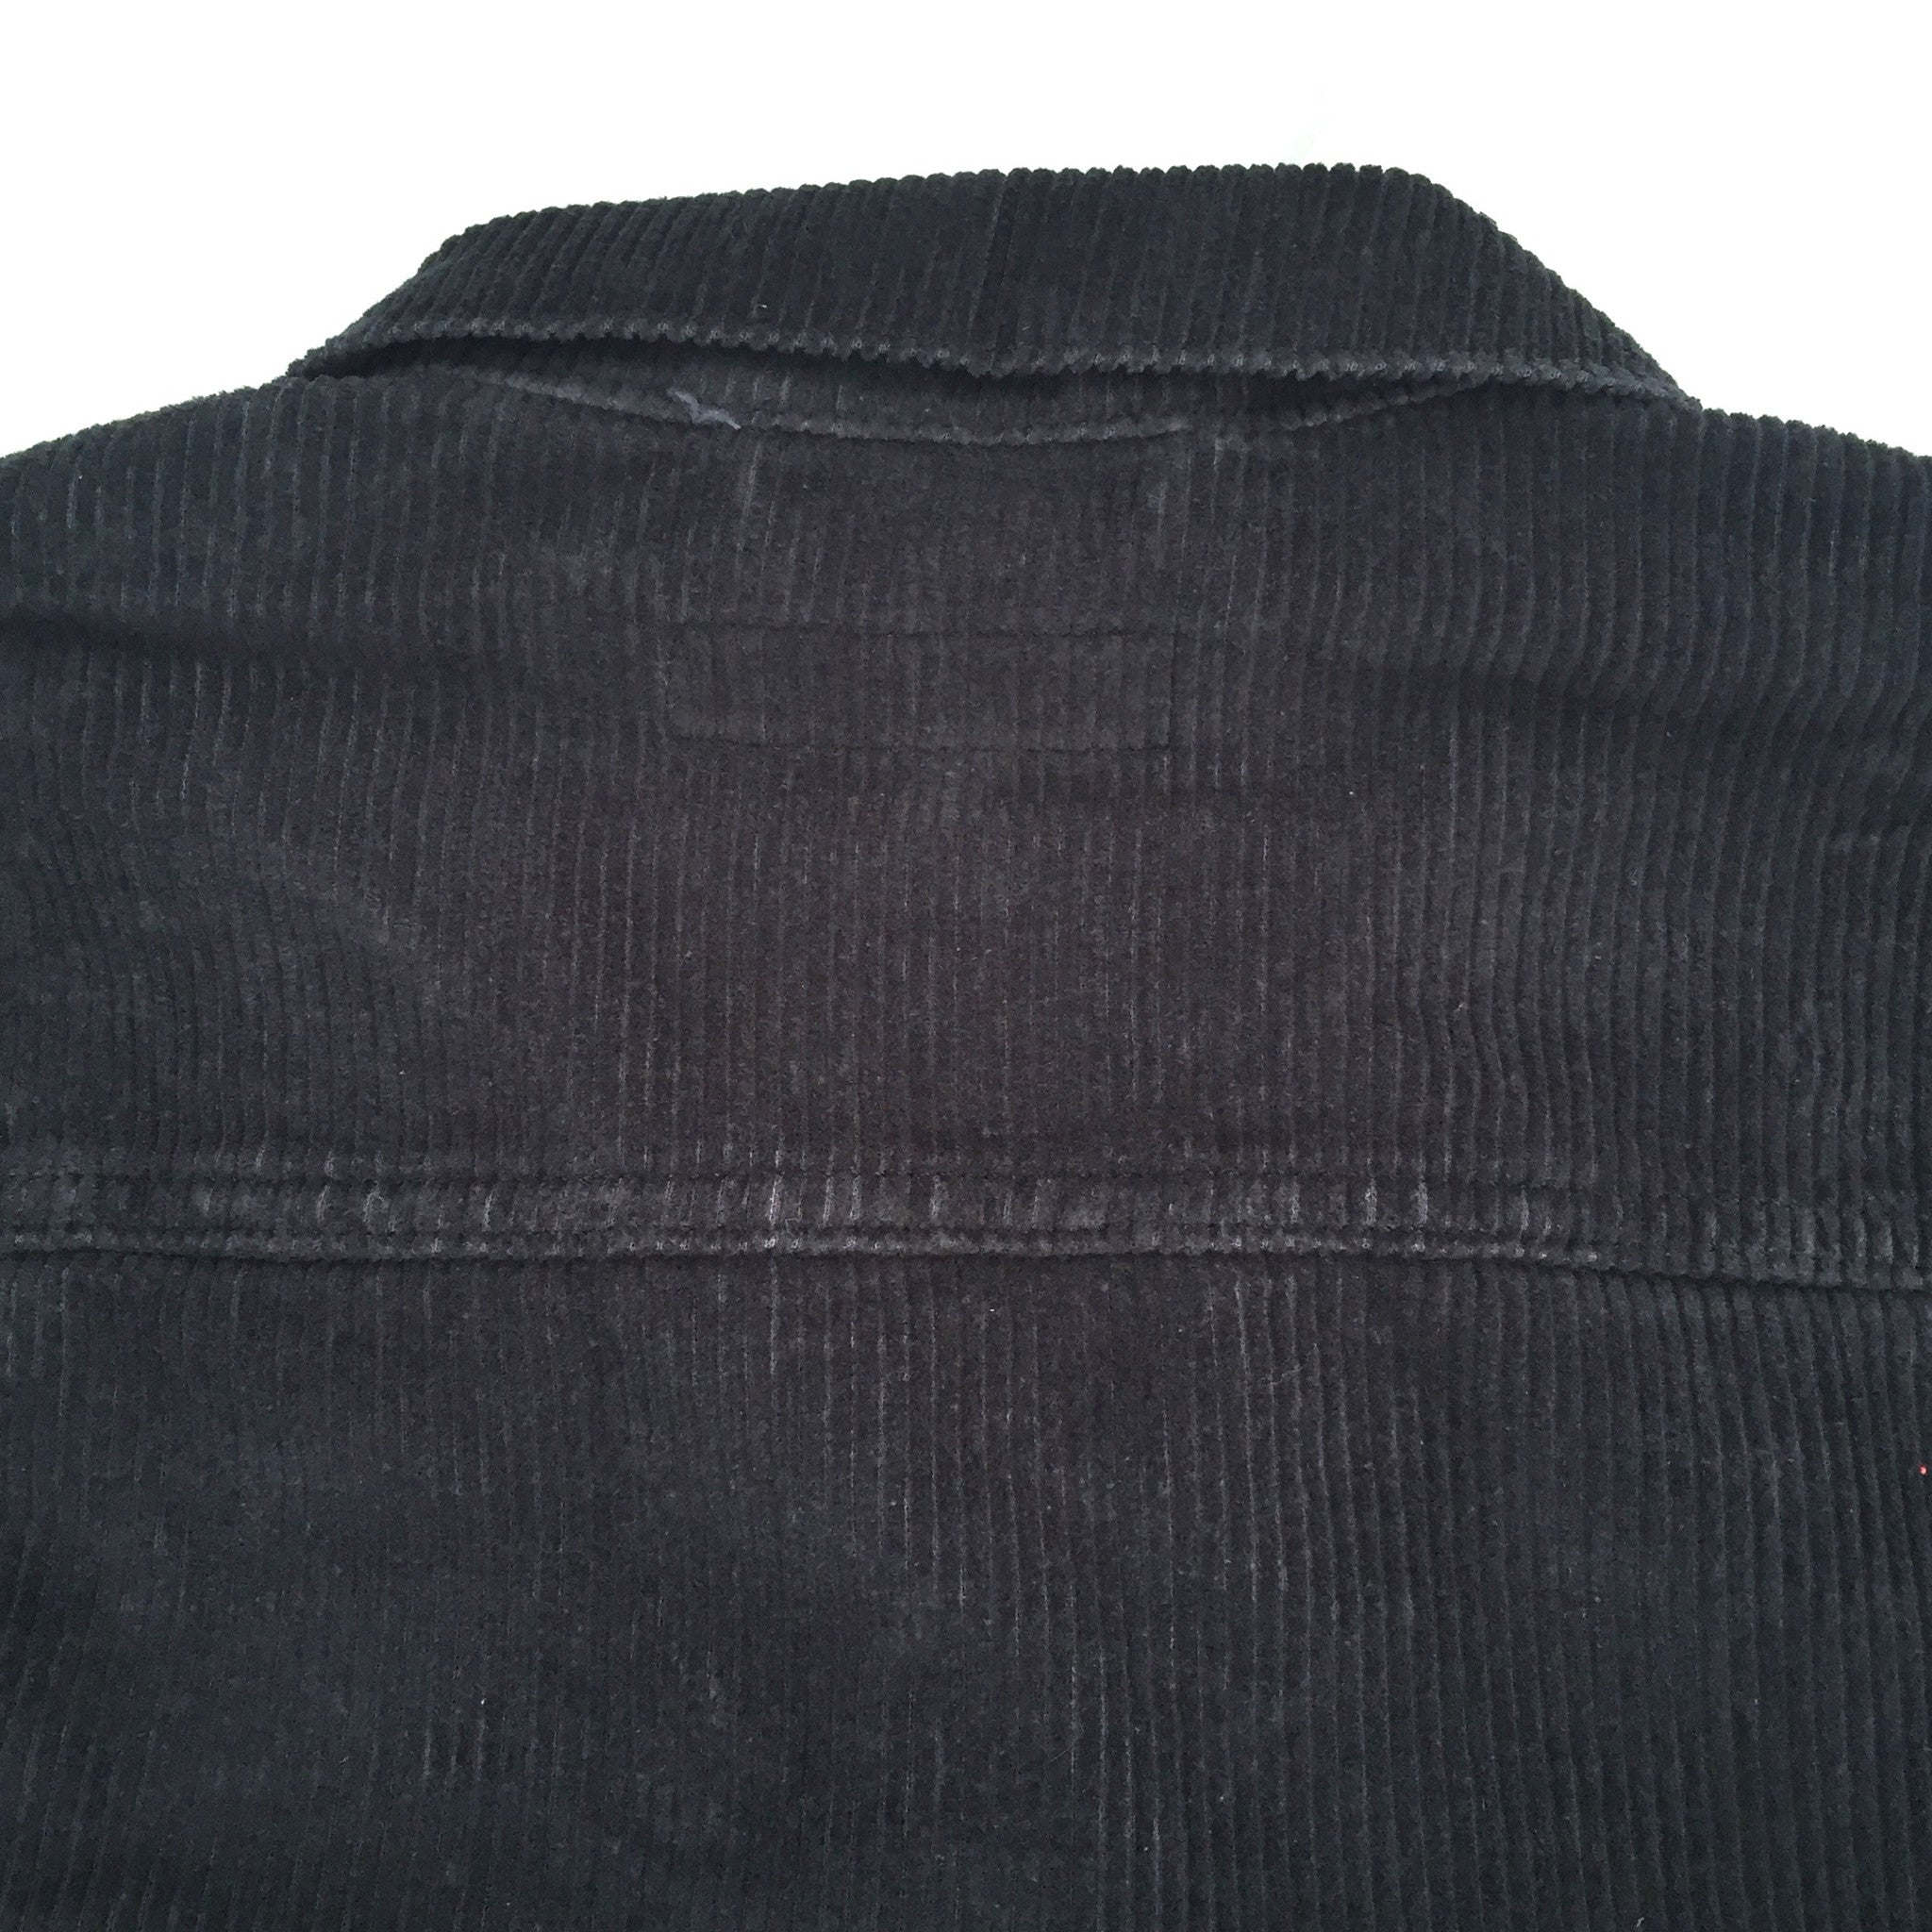 Gosha Rubchinskiy x Levi's - Black Logo Embroidered Trucker Jacket